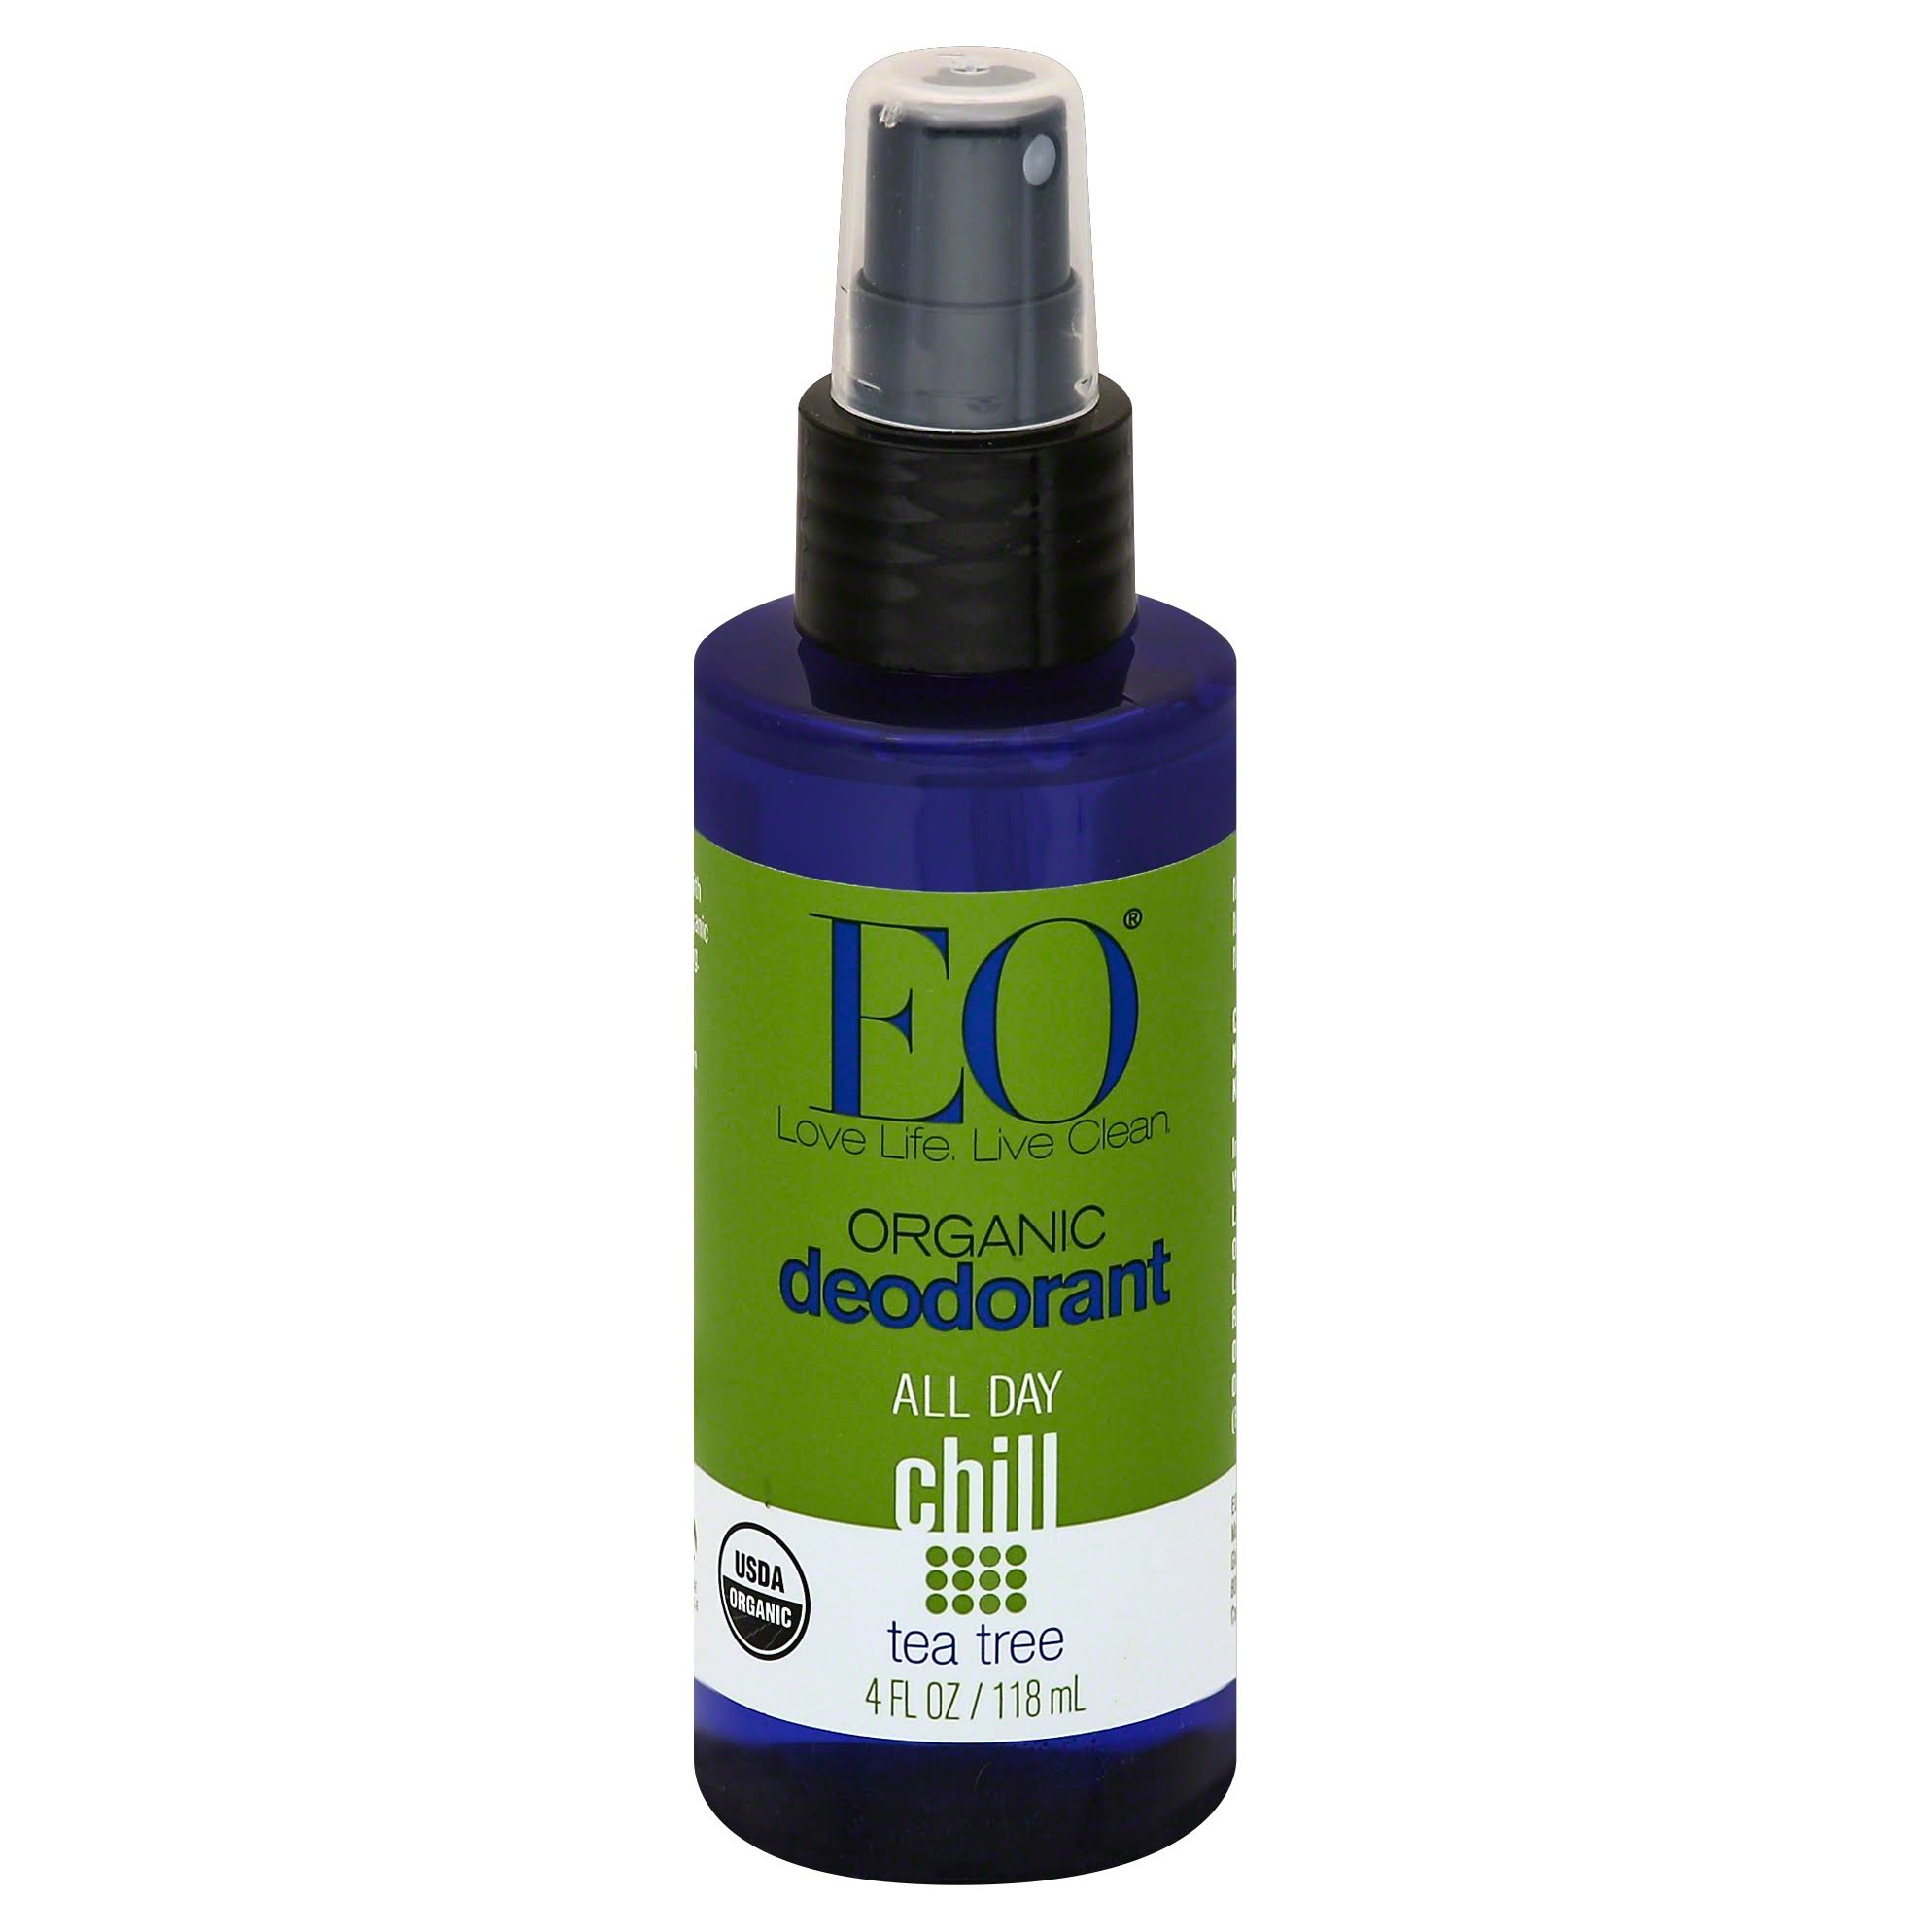 Eo Products Organic Tea Tree Deodorant Spray - 4oz